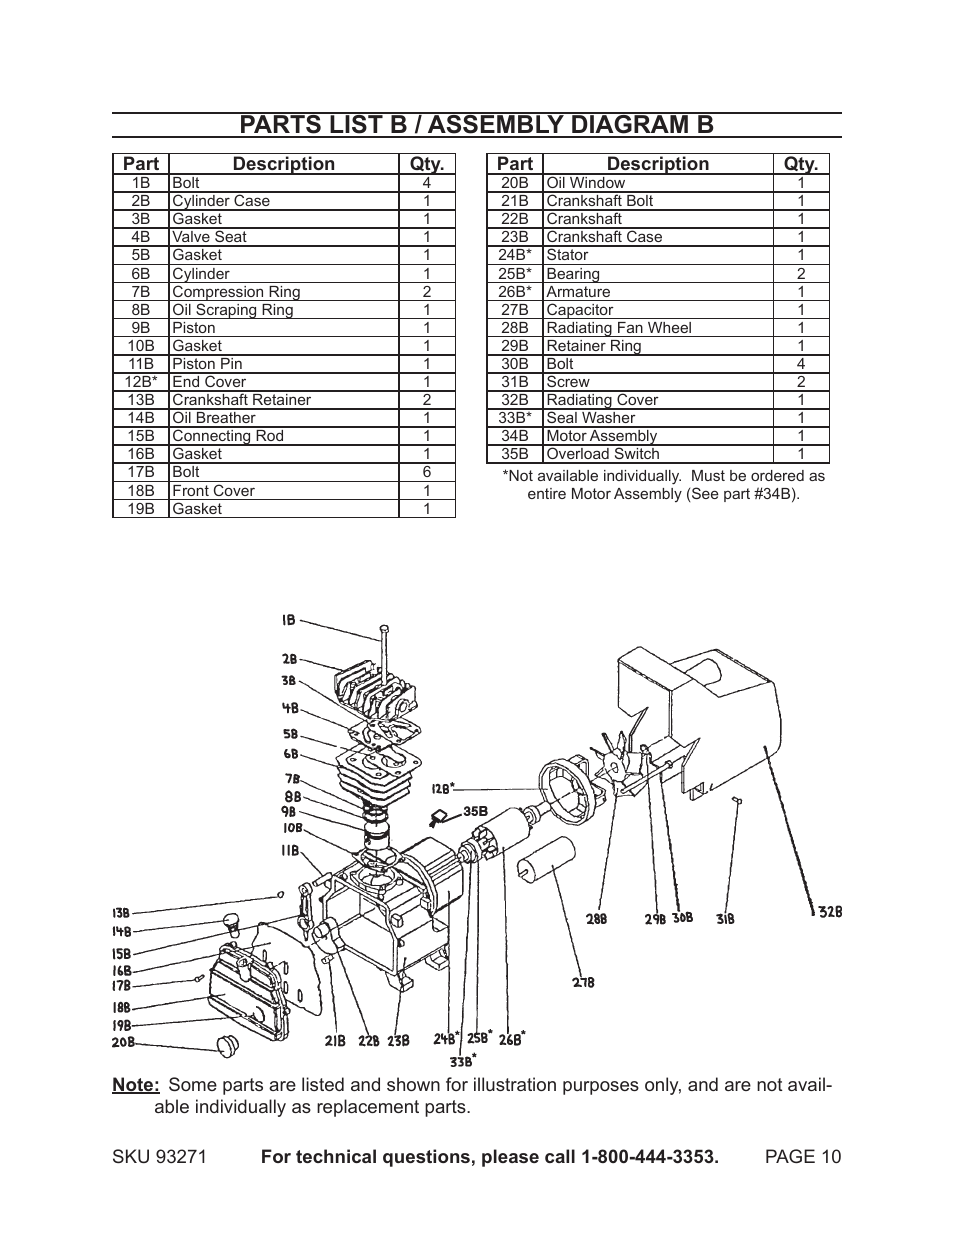 Central Pneumatic Air Compressor 21 Gallon Parts : central, pneumatic, compressor, gallon, parts, Parts, Assembly, Diagram, Harbor, Freight, Tools, VERTICAL, 93271, Manual